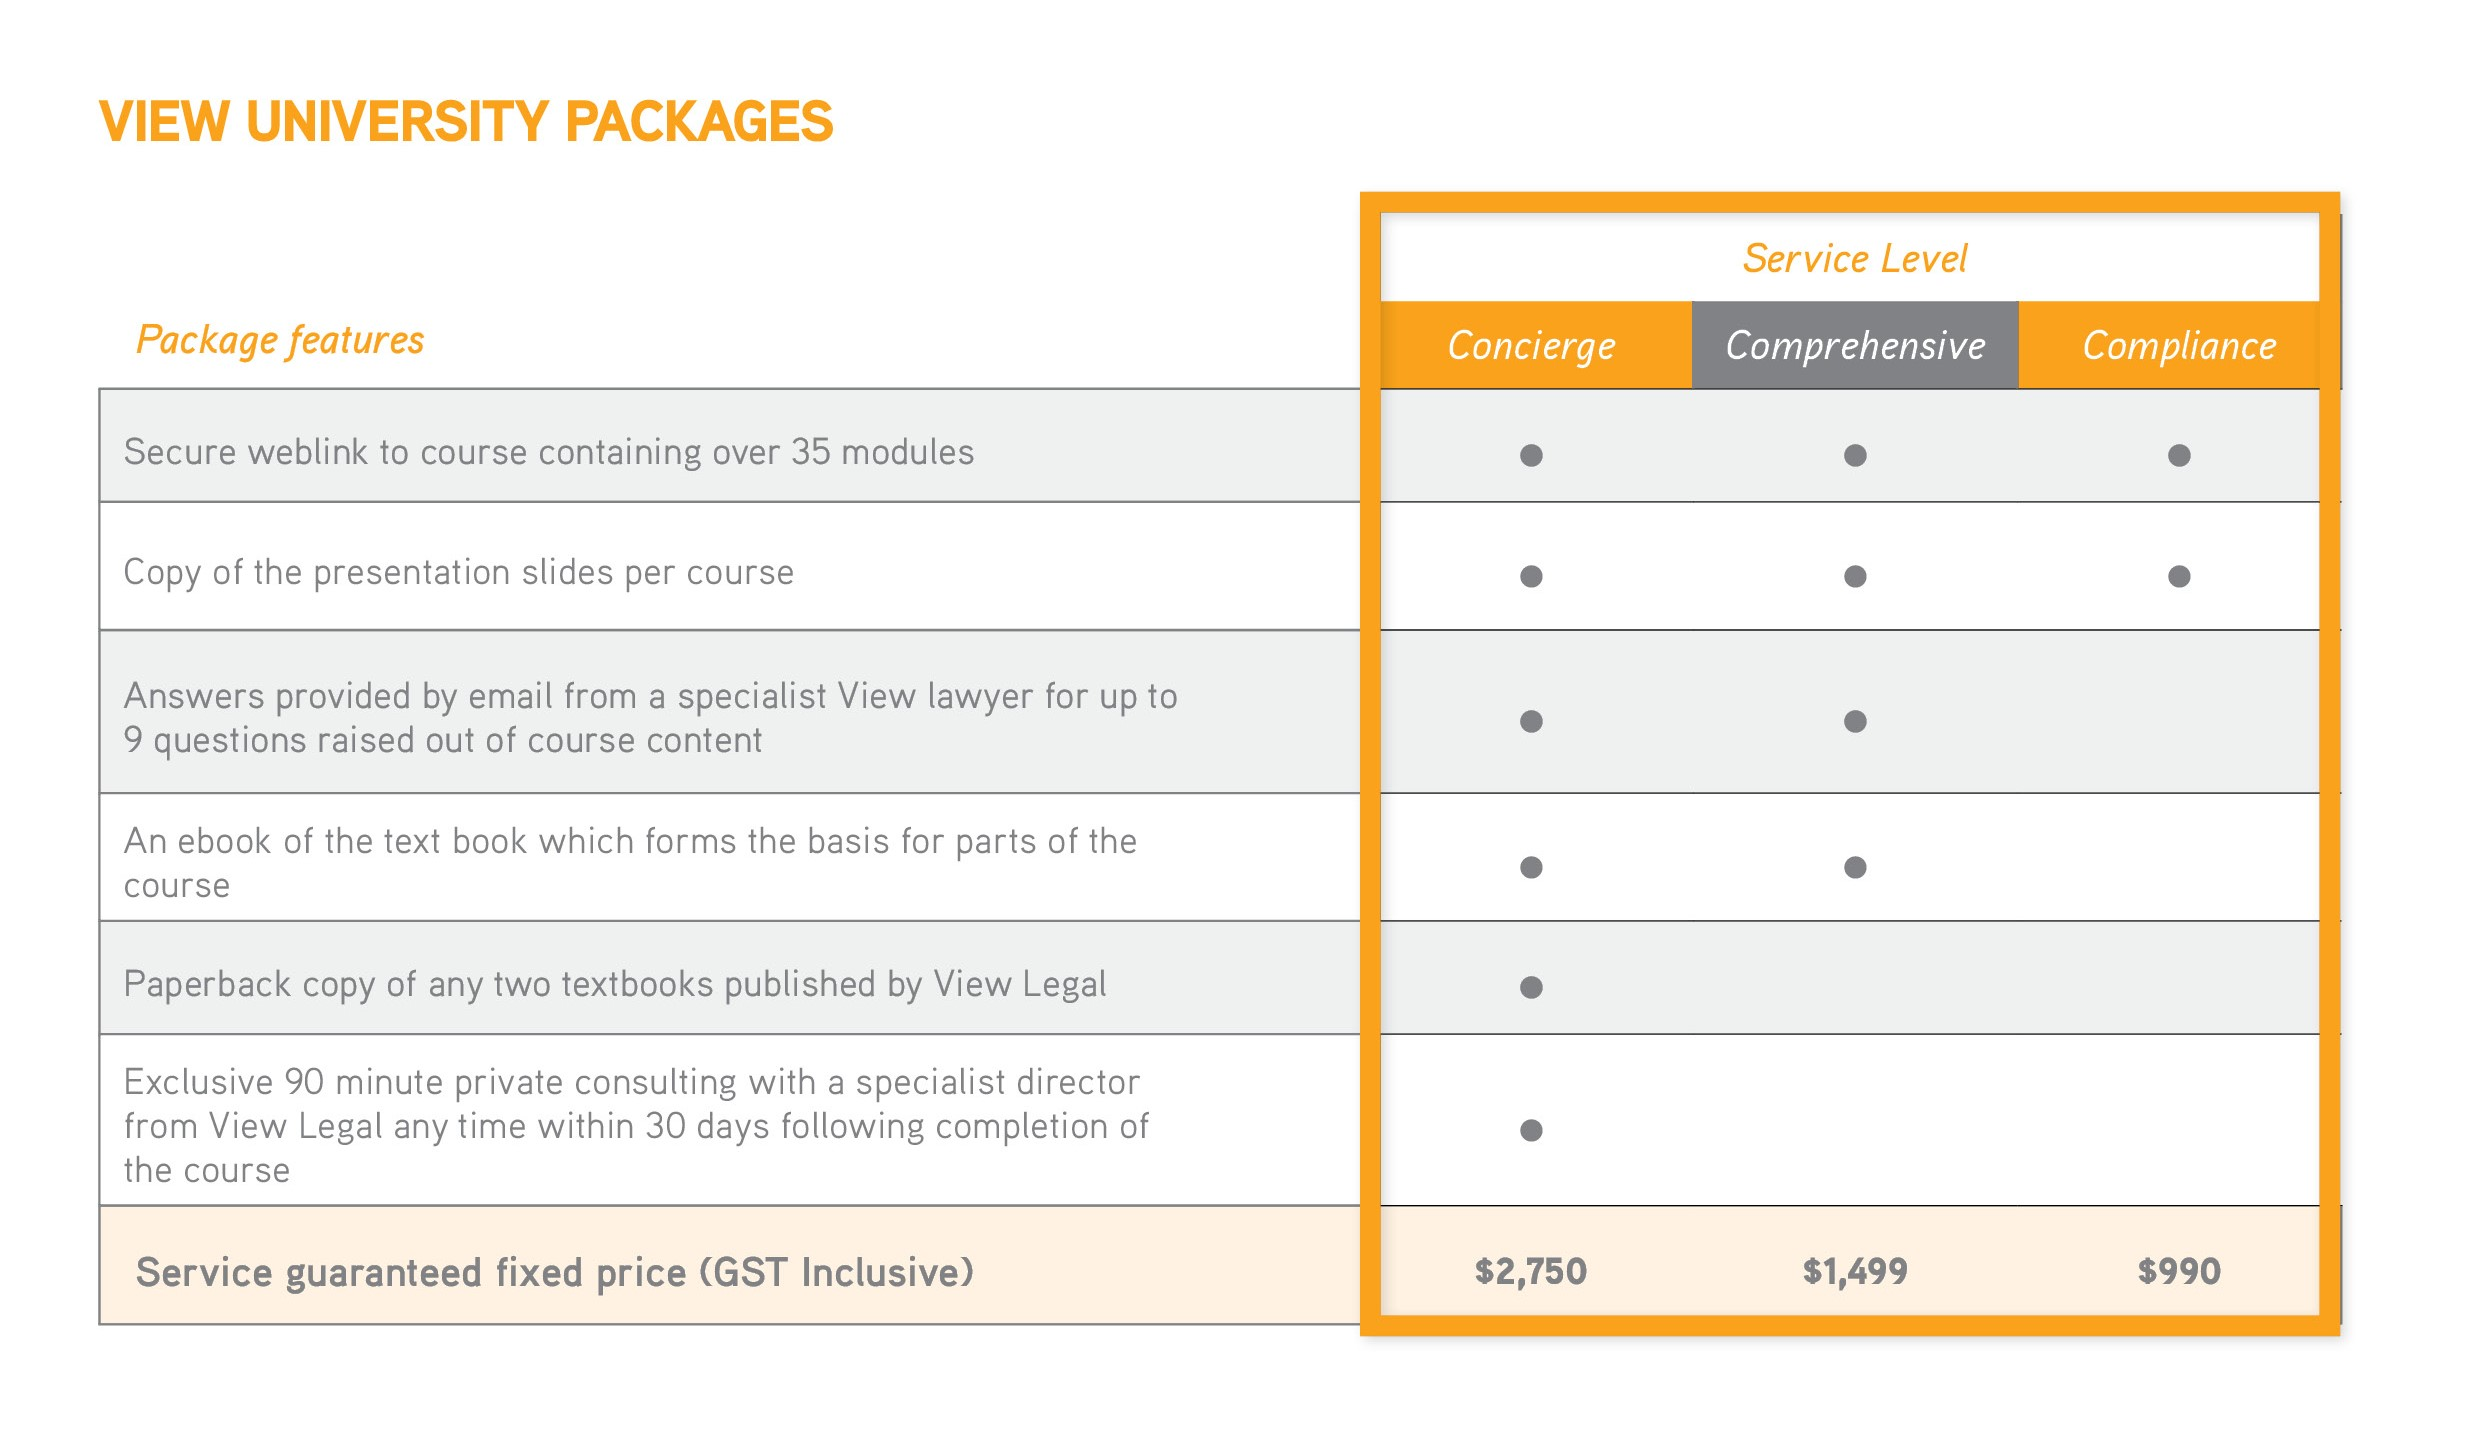 View university packages